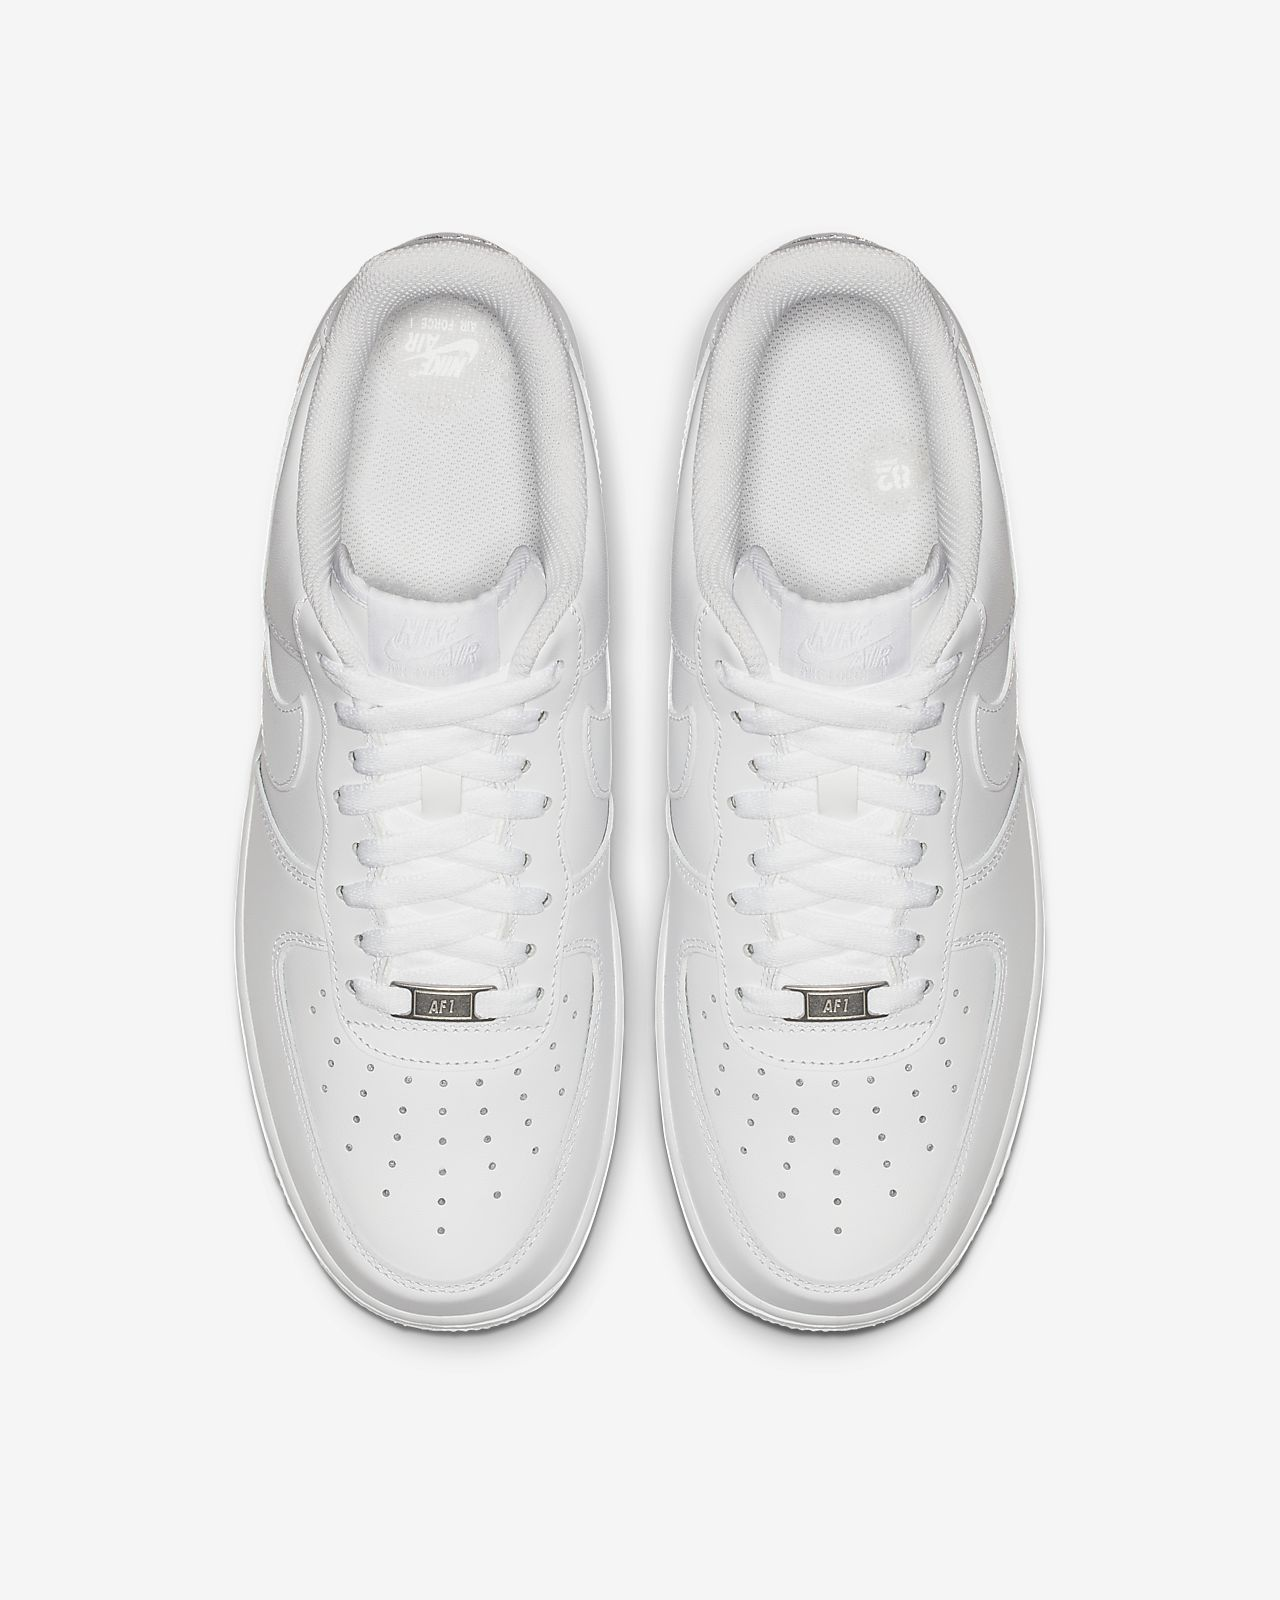 mens air force 1 white low nz